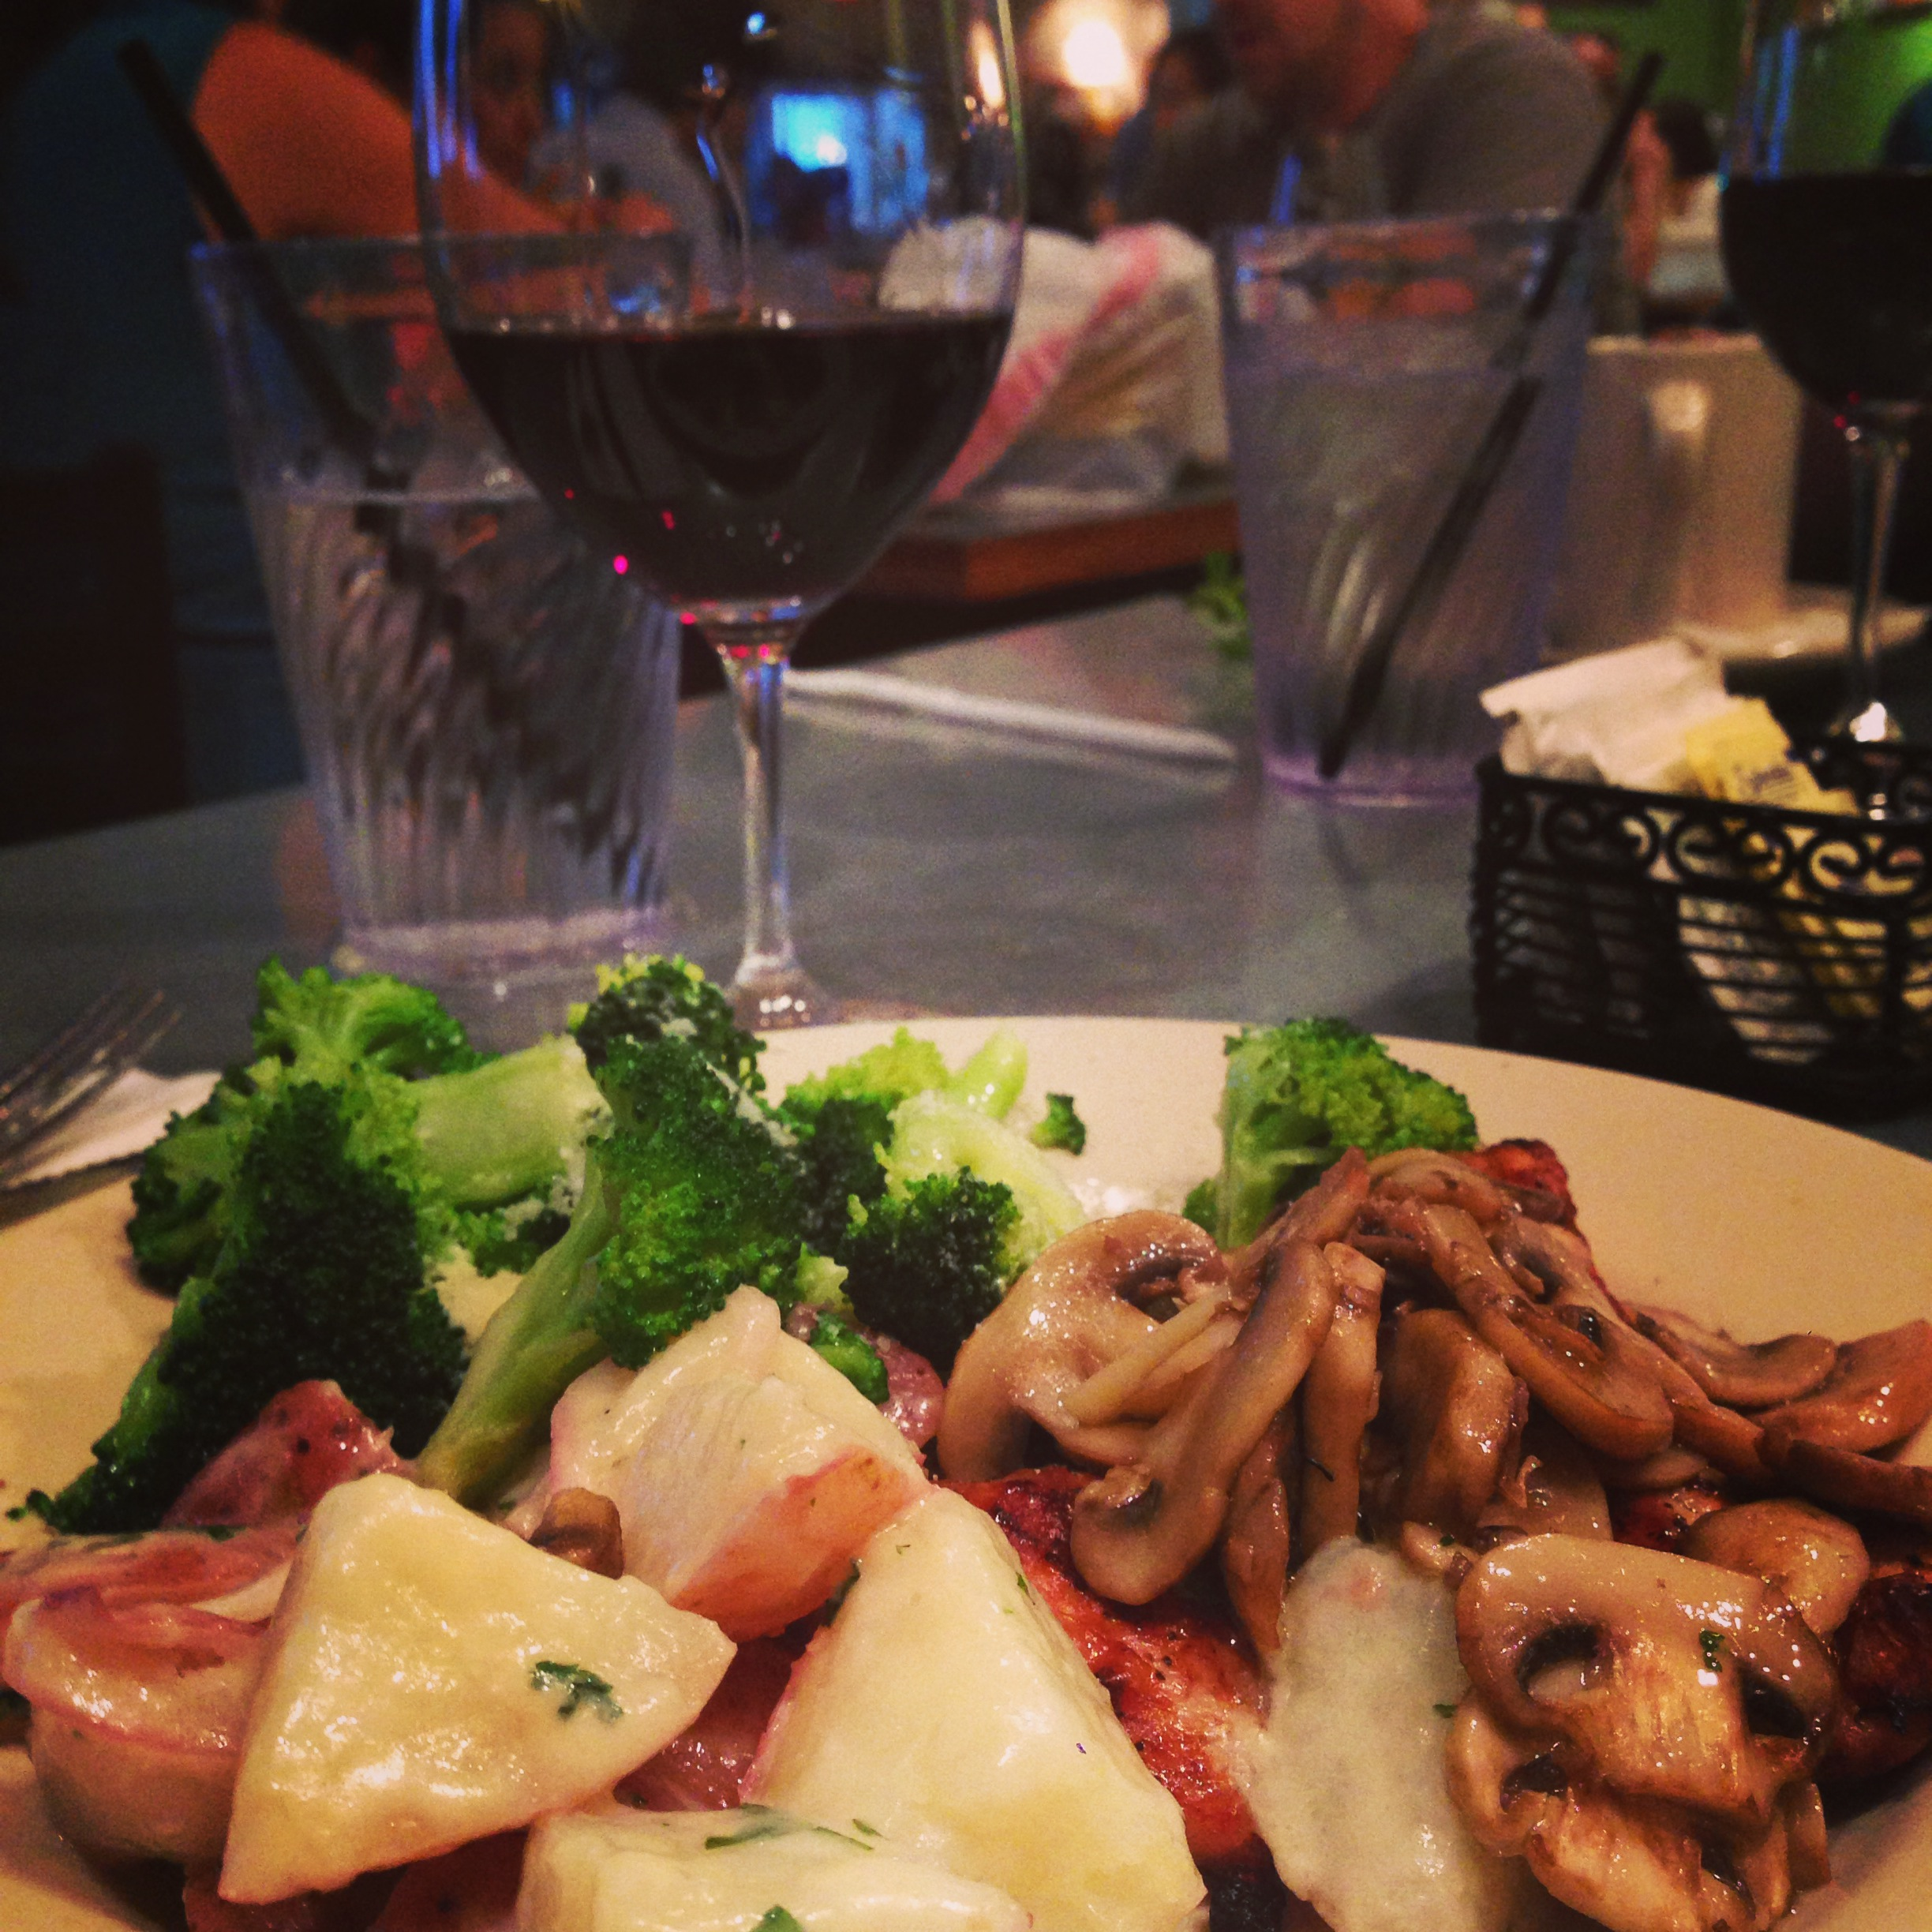 chicken breast with mushrooms and broccoli